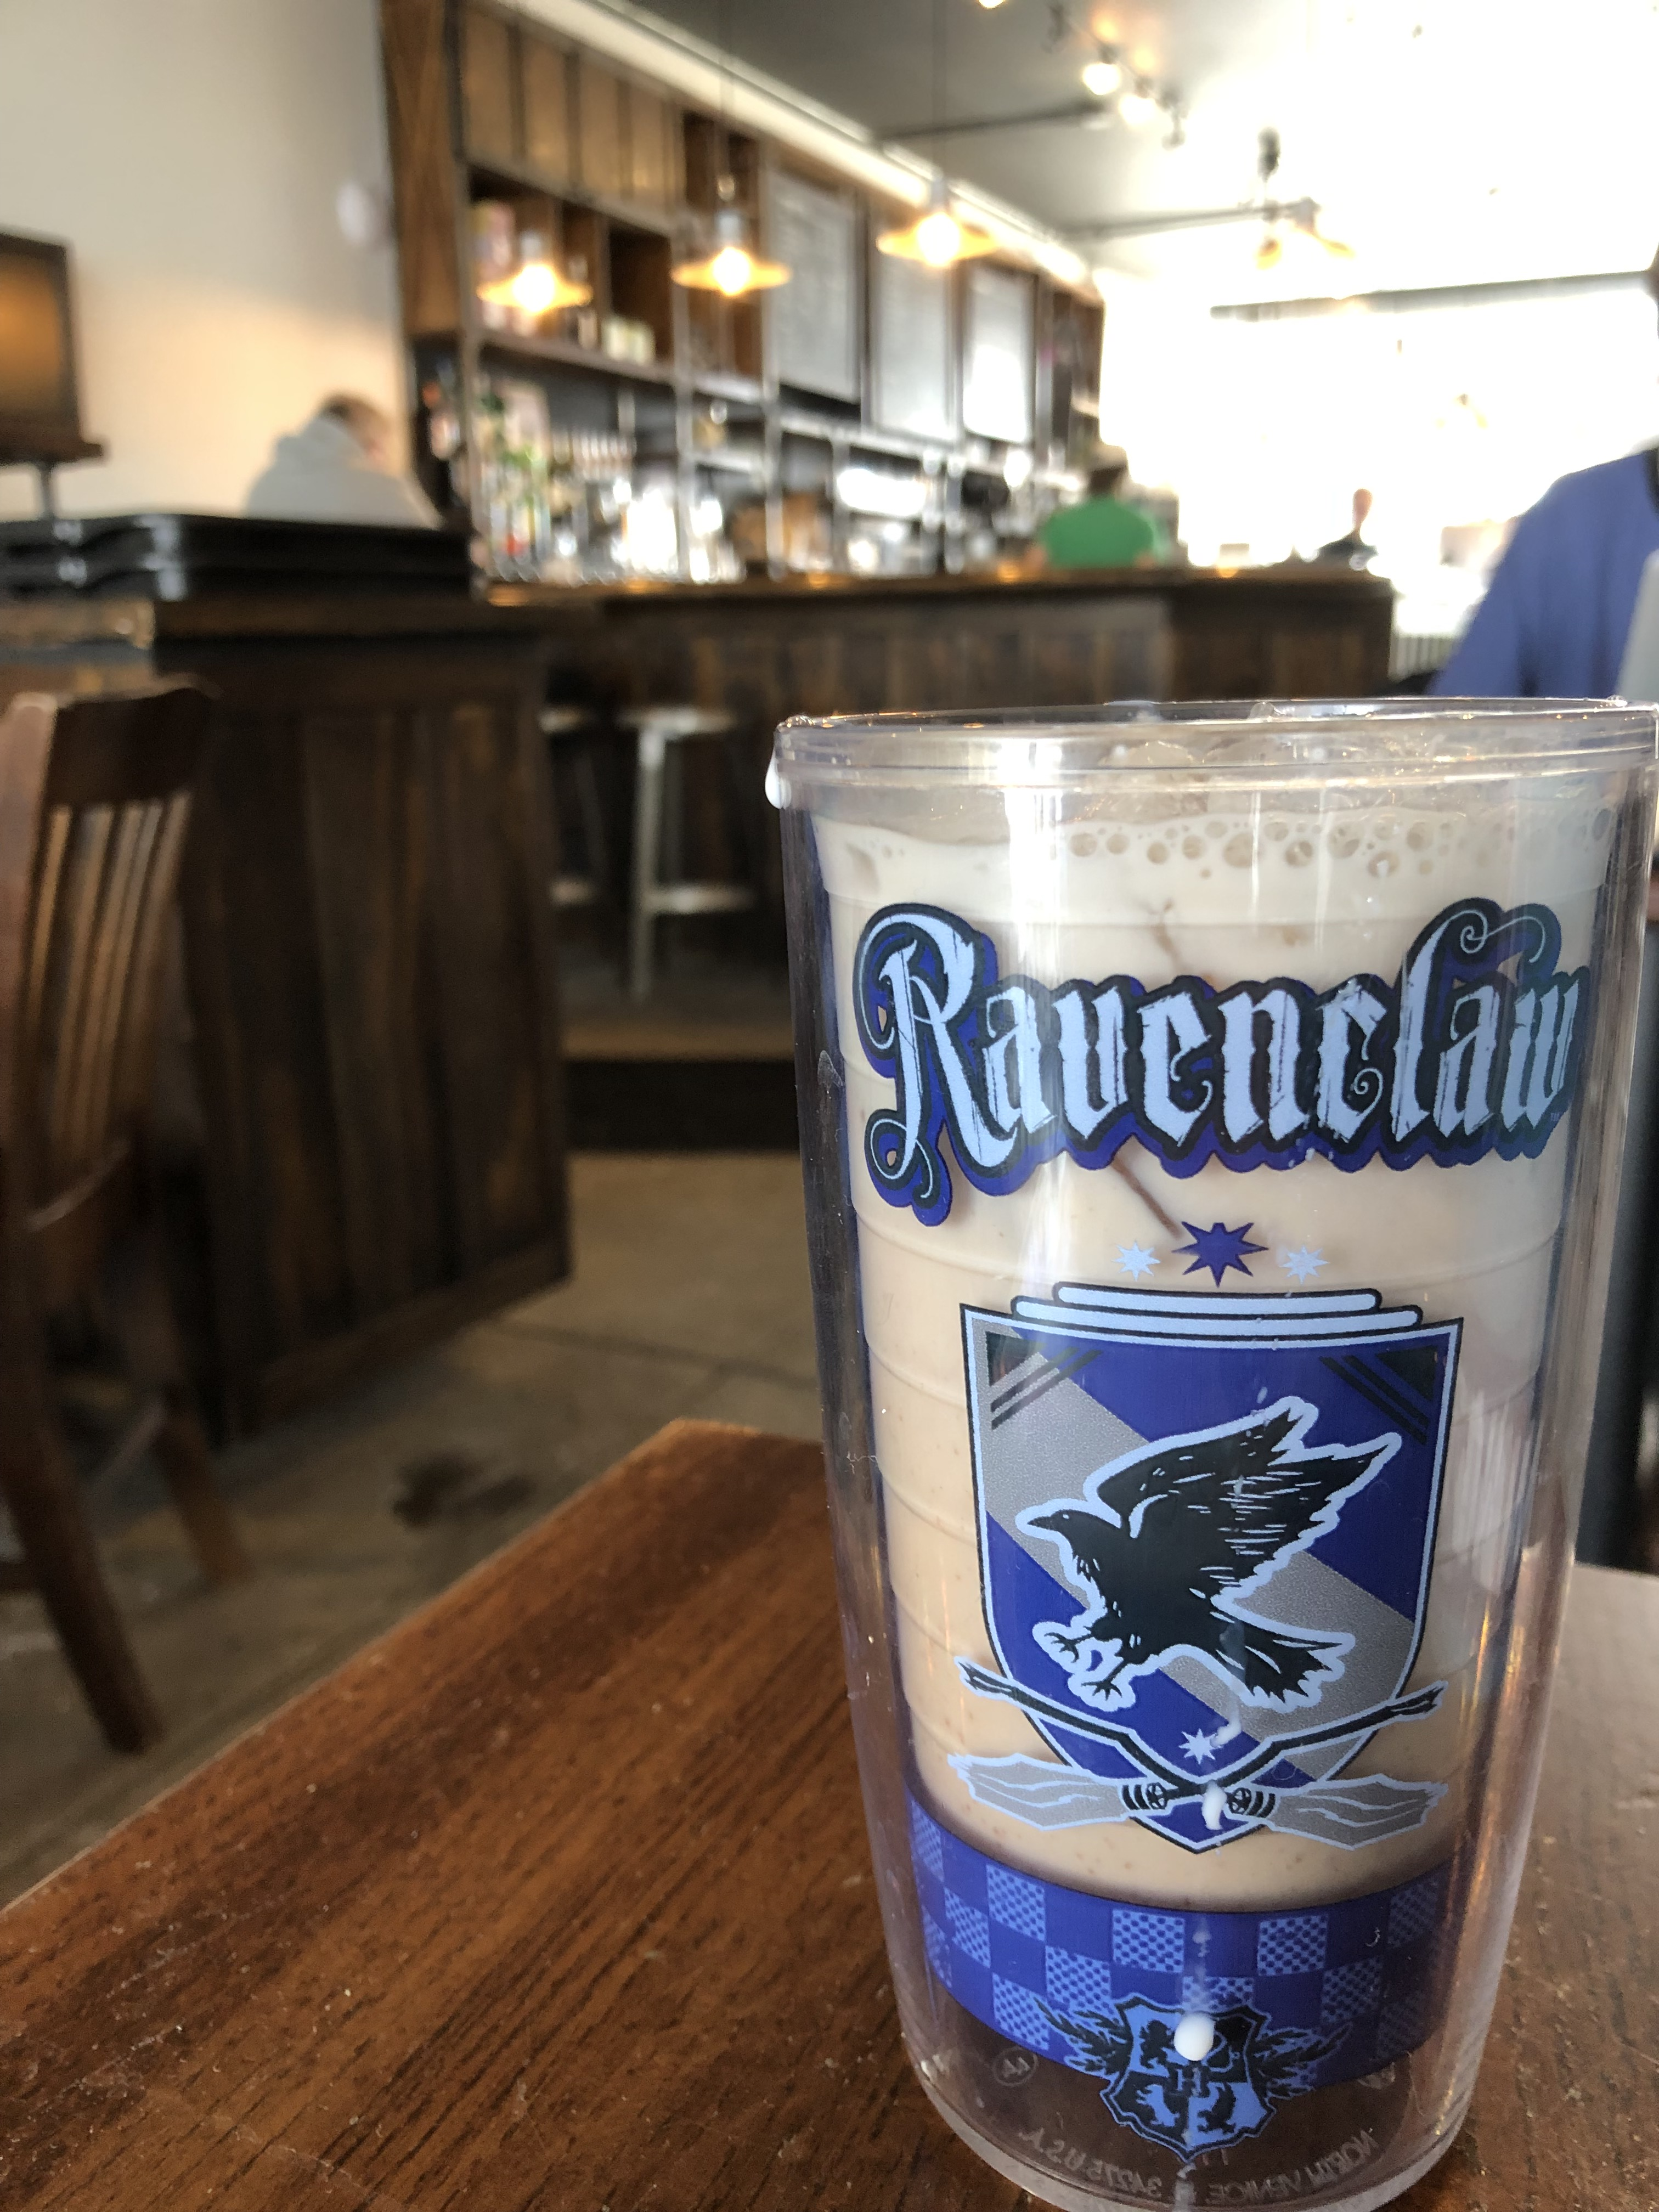 A milky chai latte with small cubes of ice sits in a blue reusable cup with 'Ravenclaw' written across it in blue letters, with the Harry Potter crested below it. Behind the drink are hanging lights and a dark brown, rustic-looking counter and silver stools.